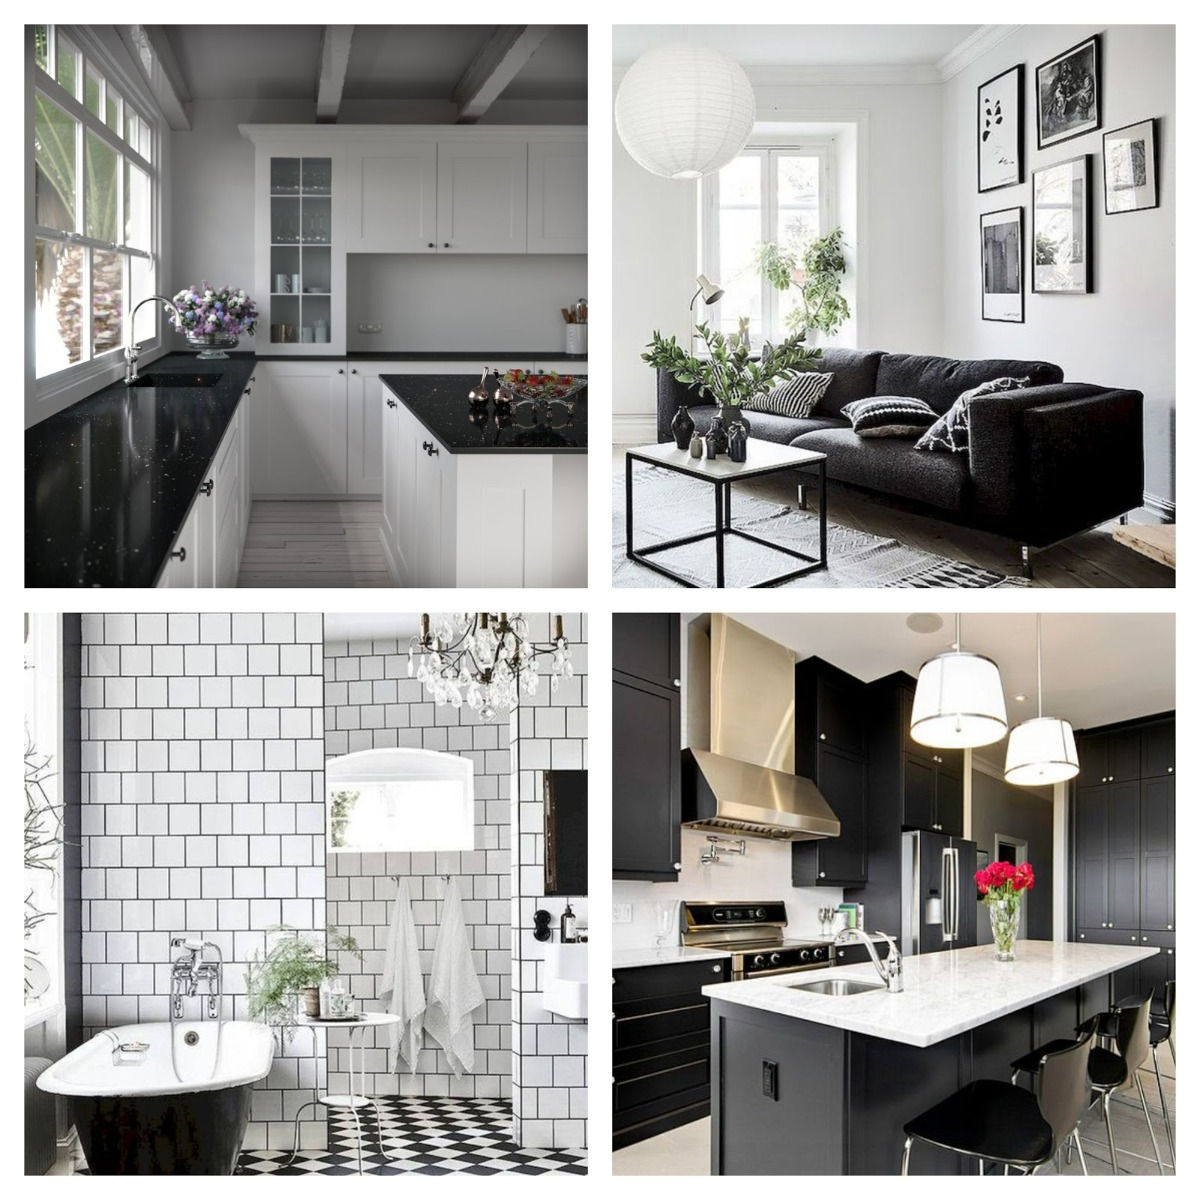 Black and White Furnishings